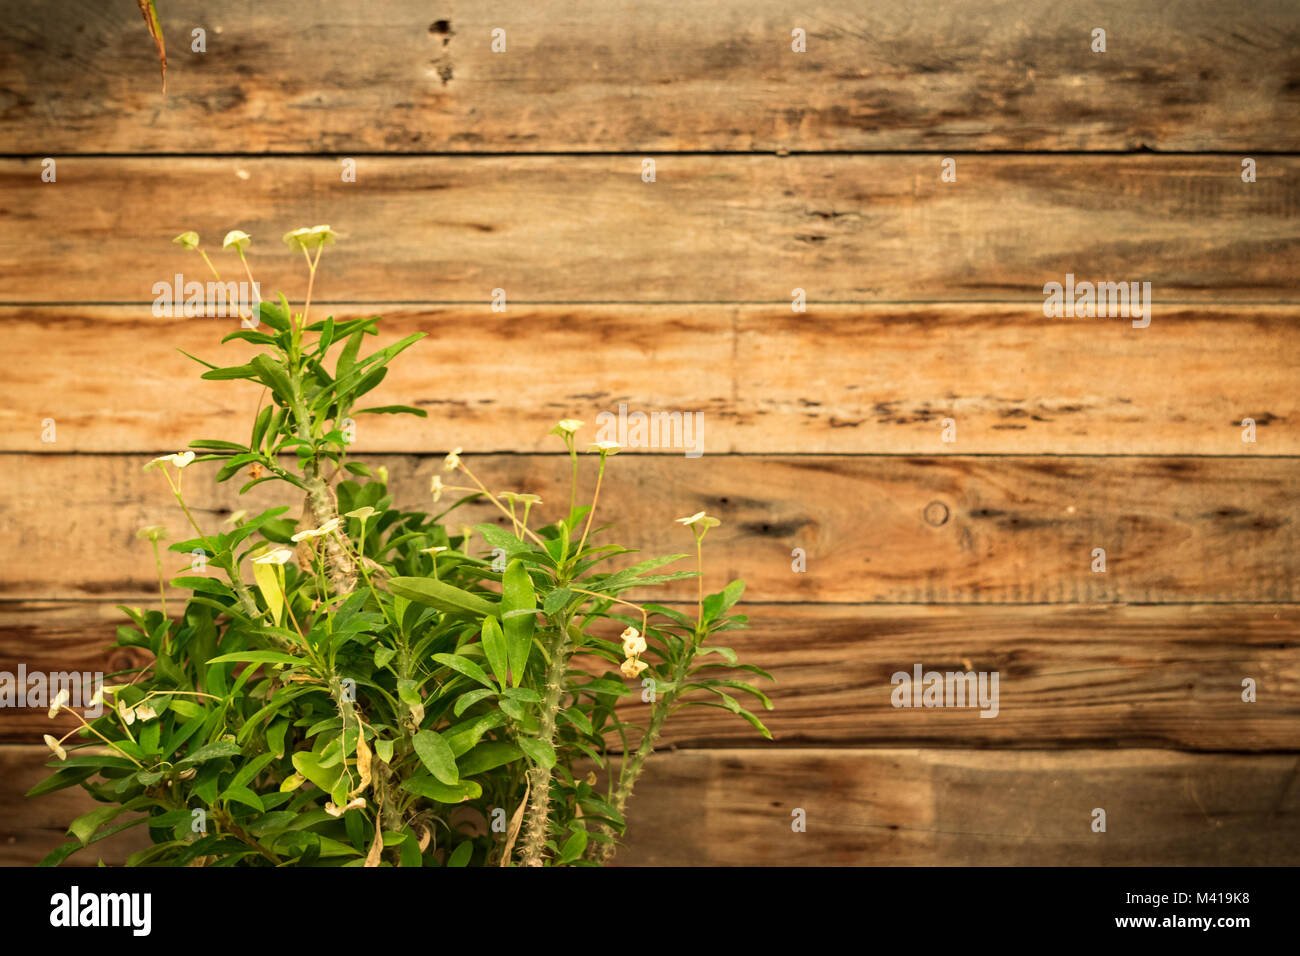 Thorny Plant Wooden Background For Caption Or Title Homey Rustic Traditional Theme